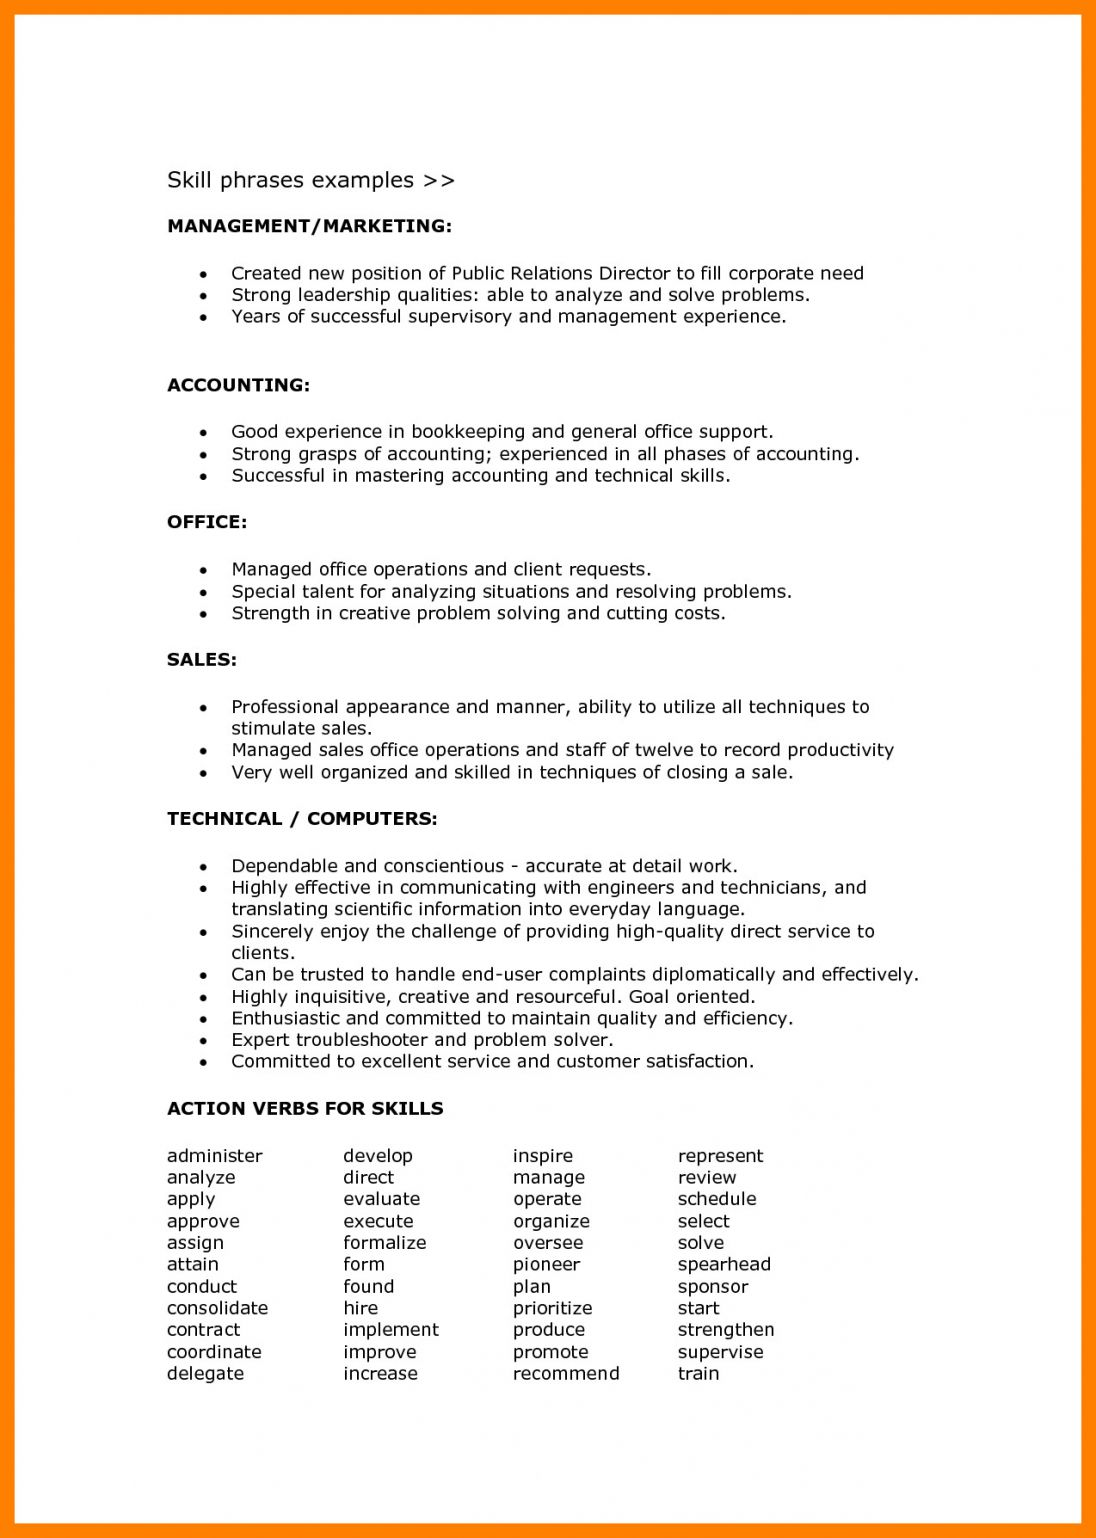 resume format language skills examples objective proficiency should put hobbies on font Resume Language Proficiency Resume